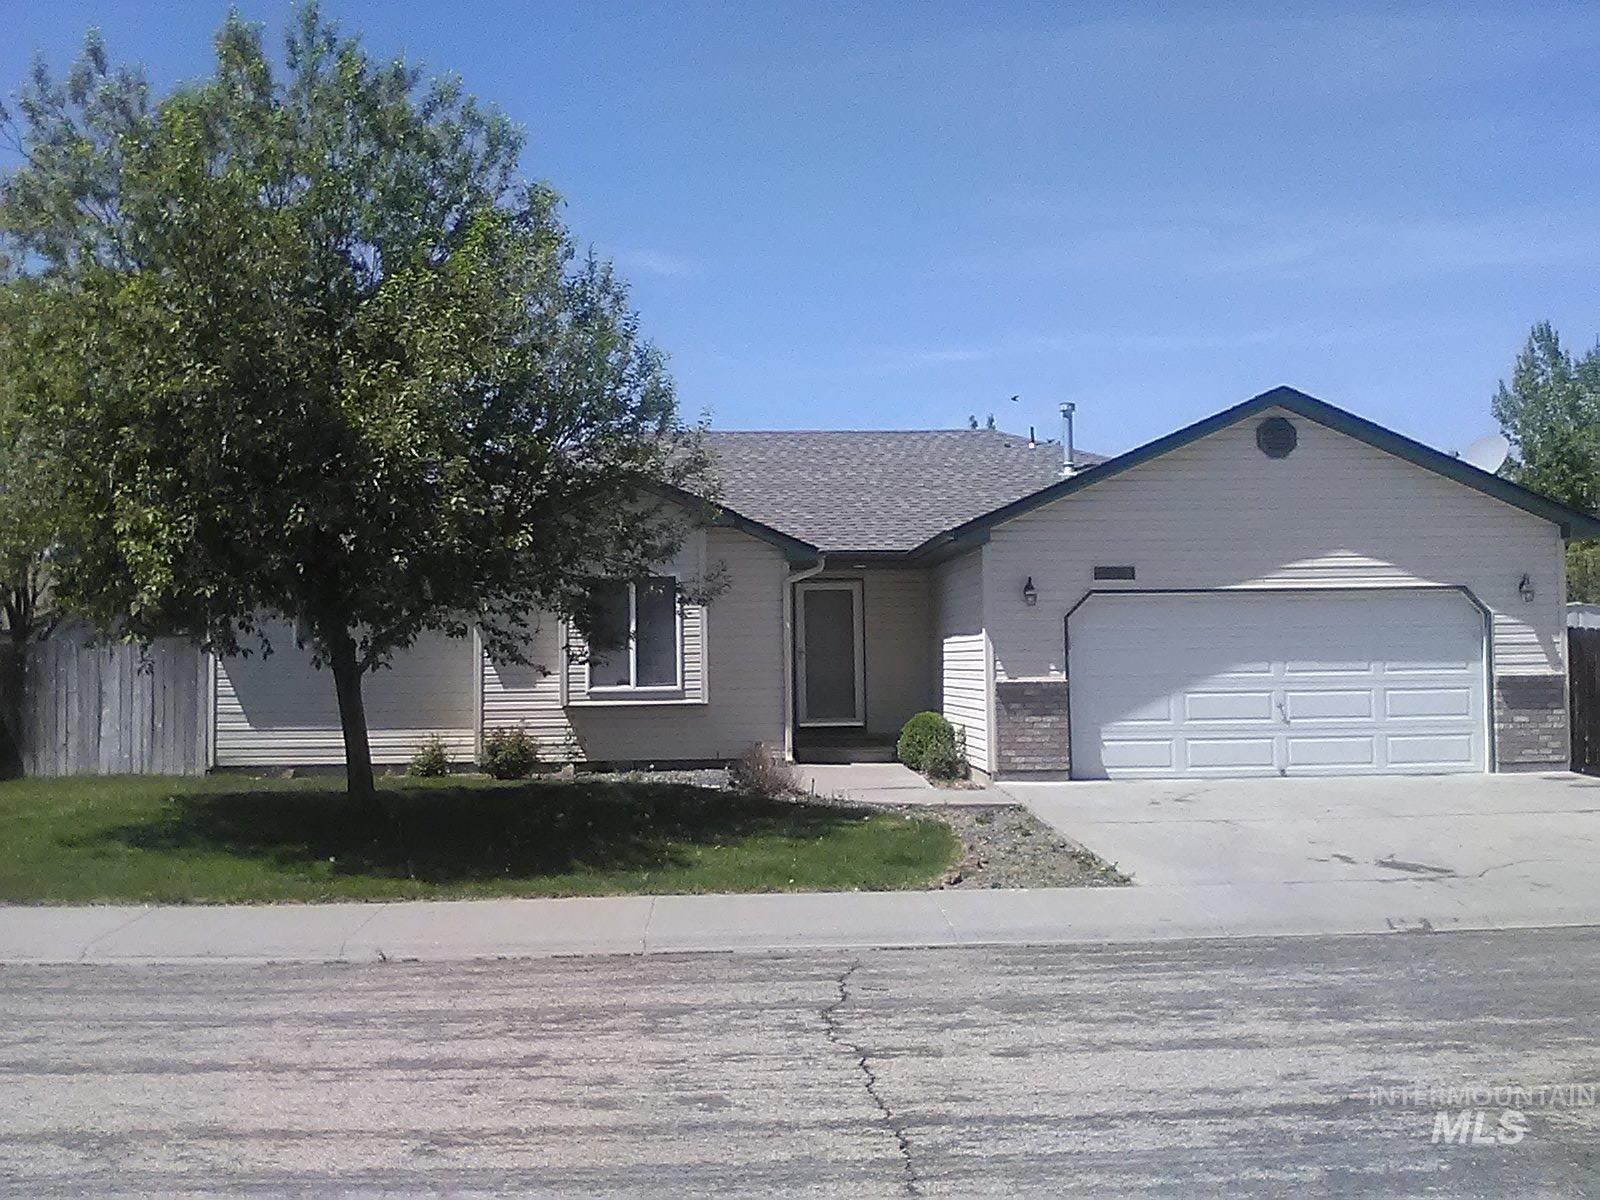 443 NW Sandpiper Ave Property Photo - Mountain Home, ID real estate listing